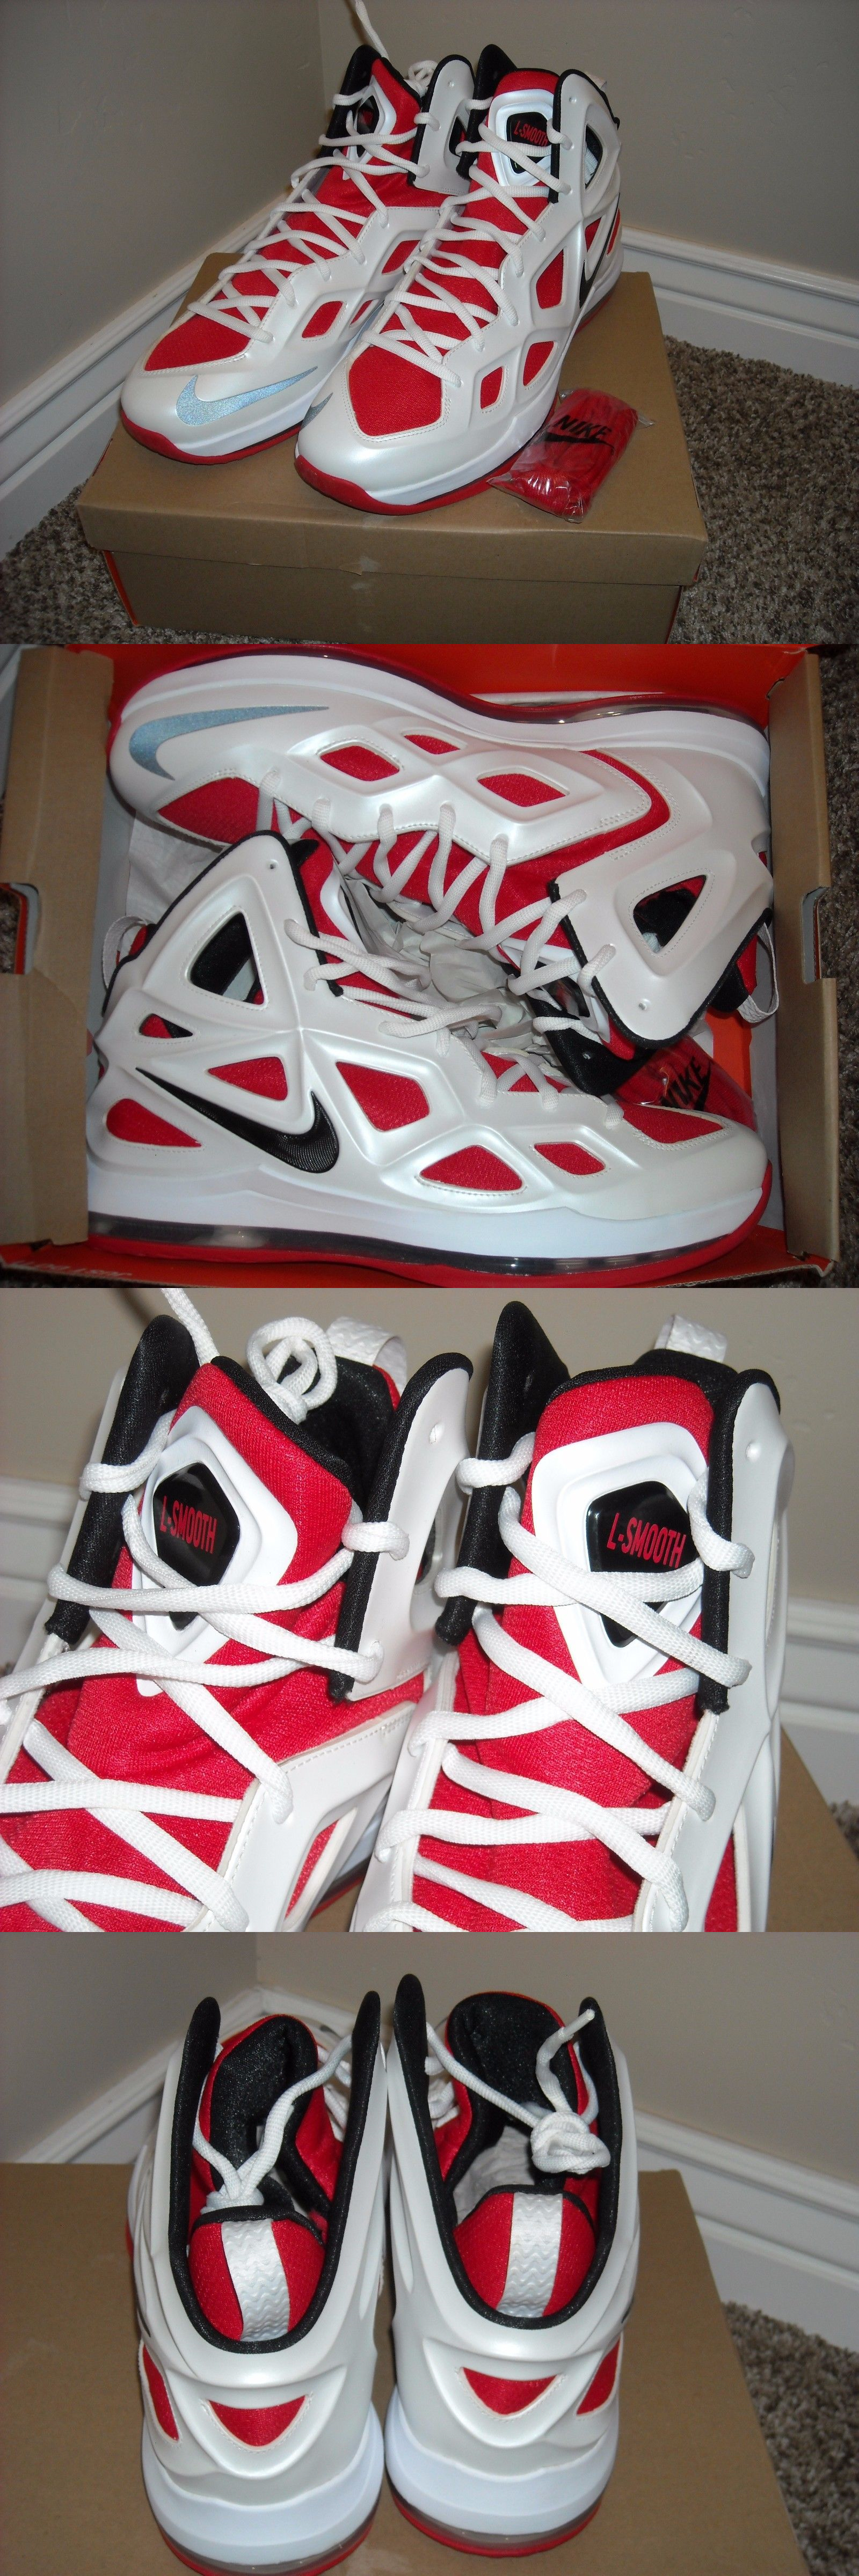 bbe5b484f1ff ... Basketball-NBA 50135 Lamarcus Aldridge Spurs Owned Pe Nike Hyperposite  Promo Sample Shoes ...